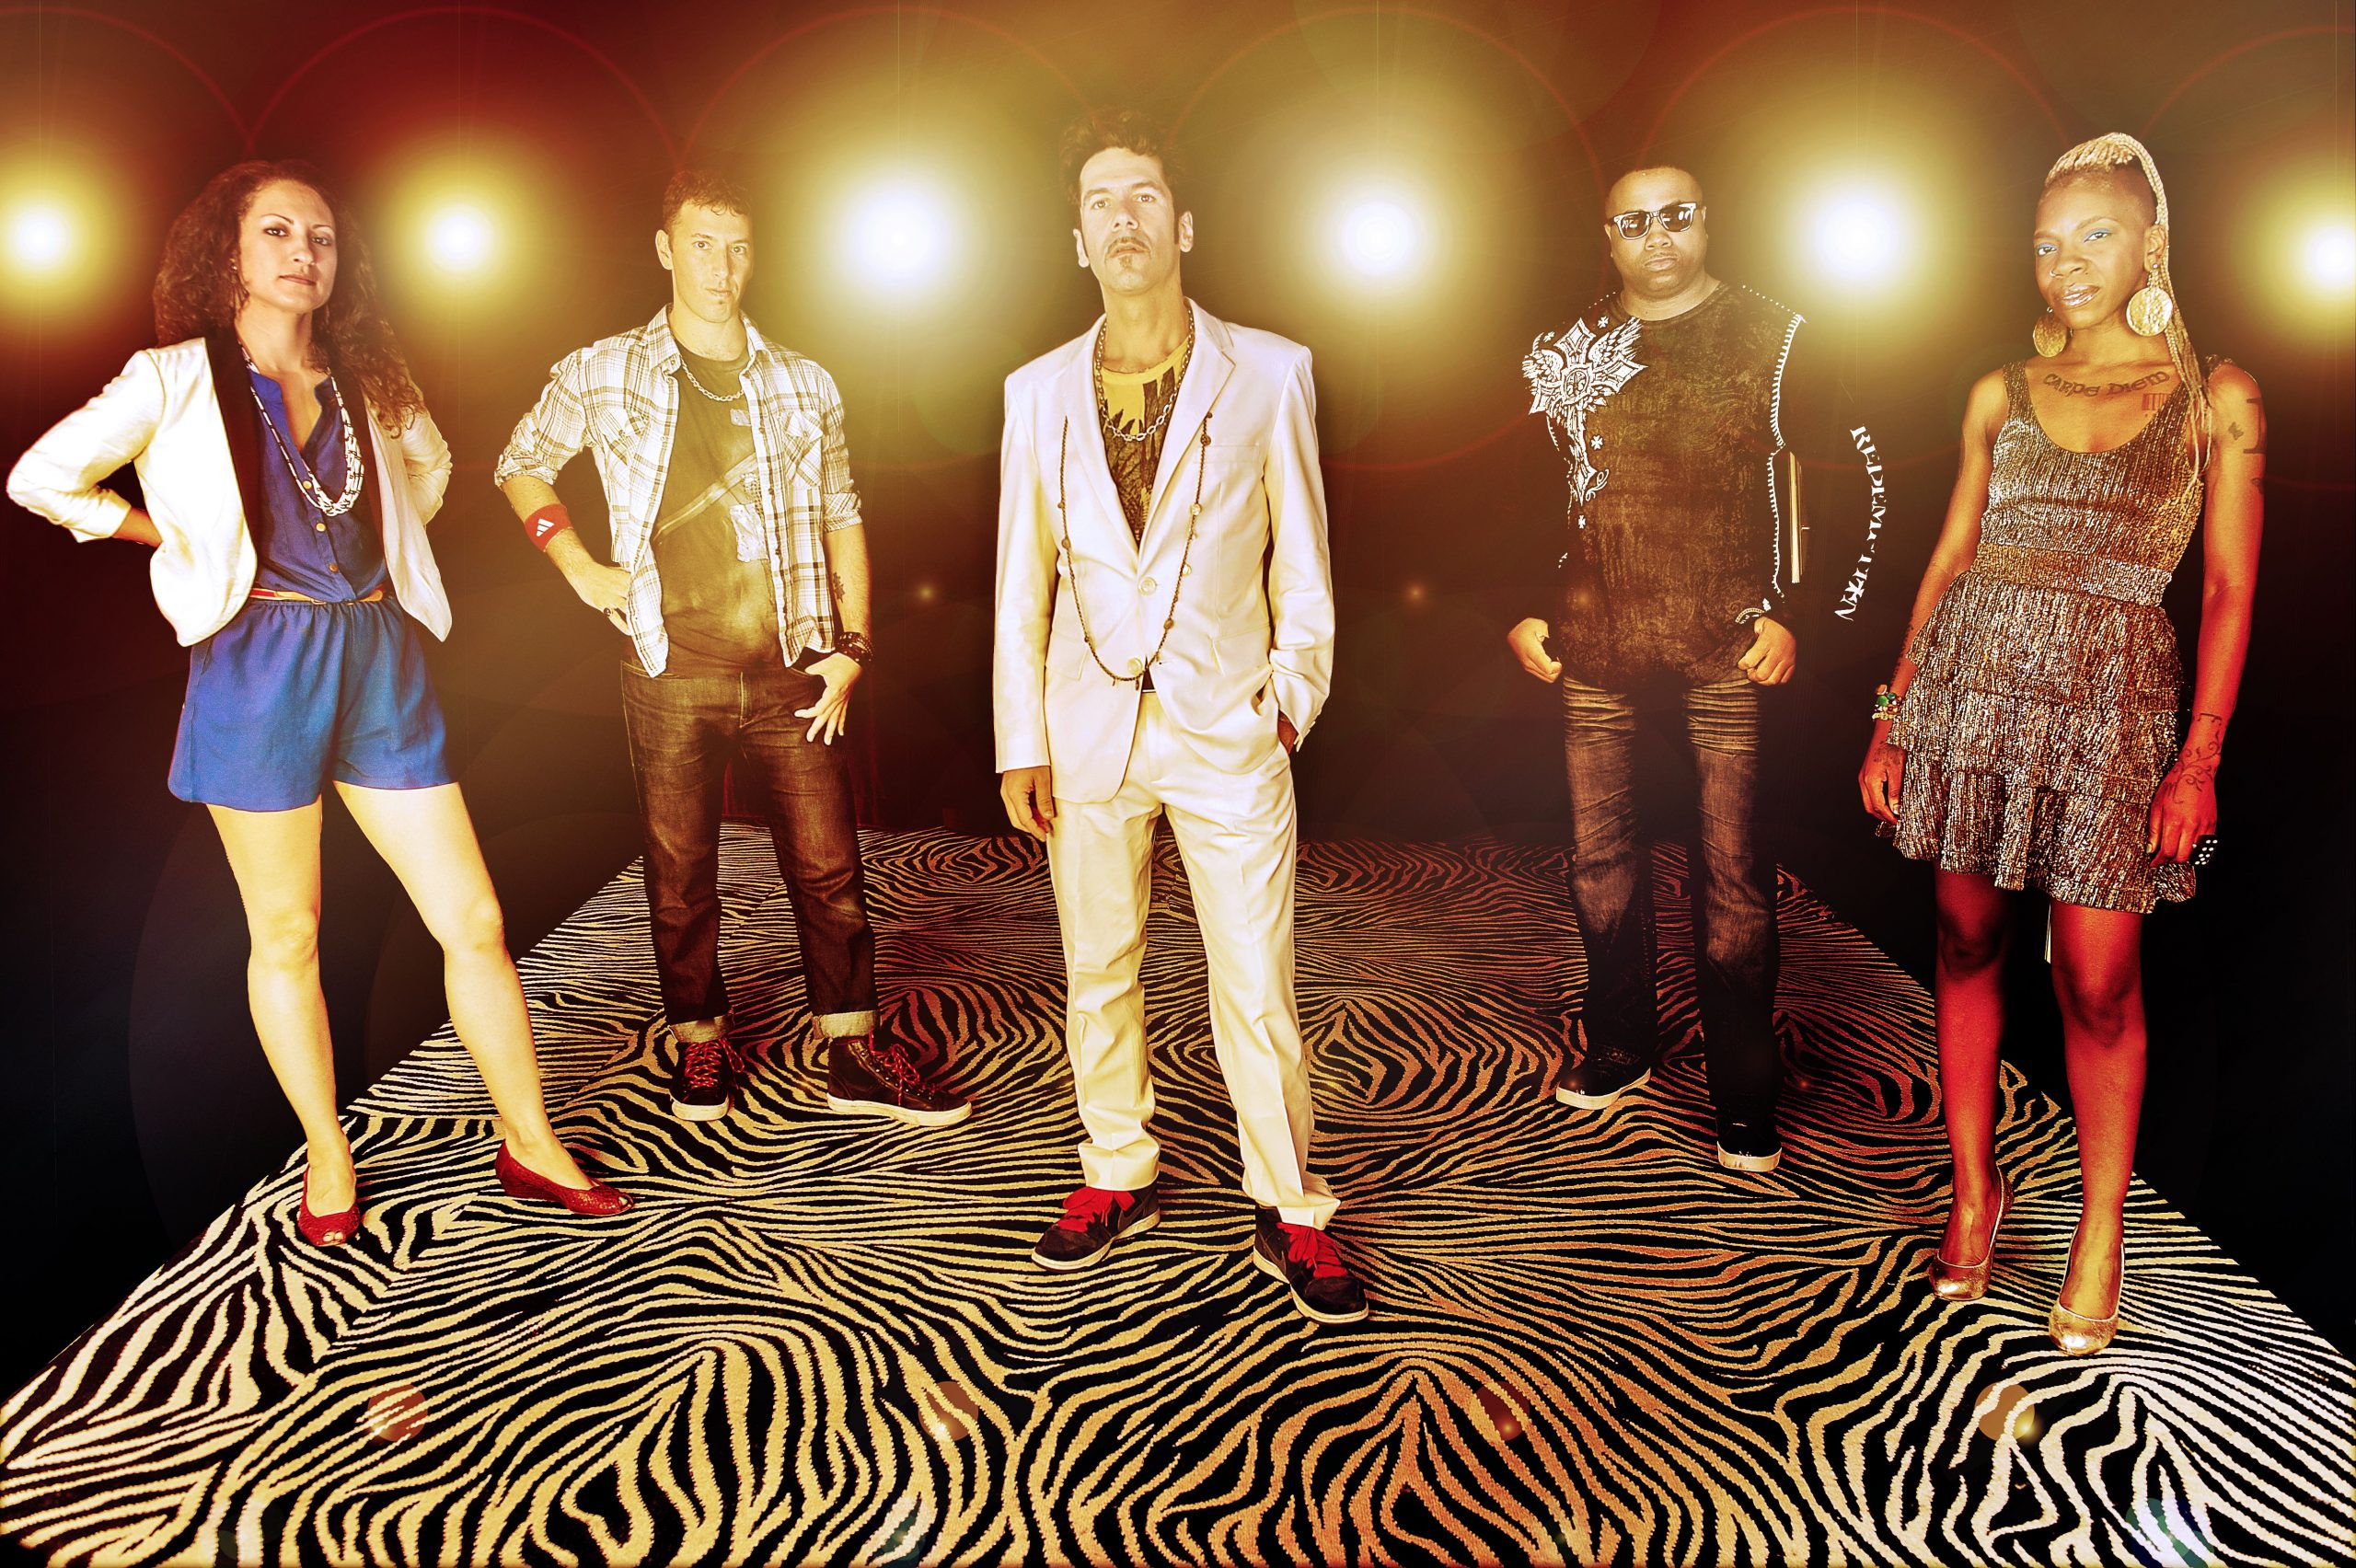 New Music and Tour Dates from The Pimps of Joytime!